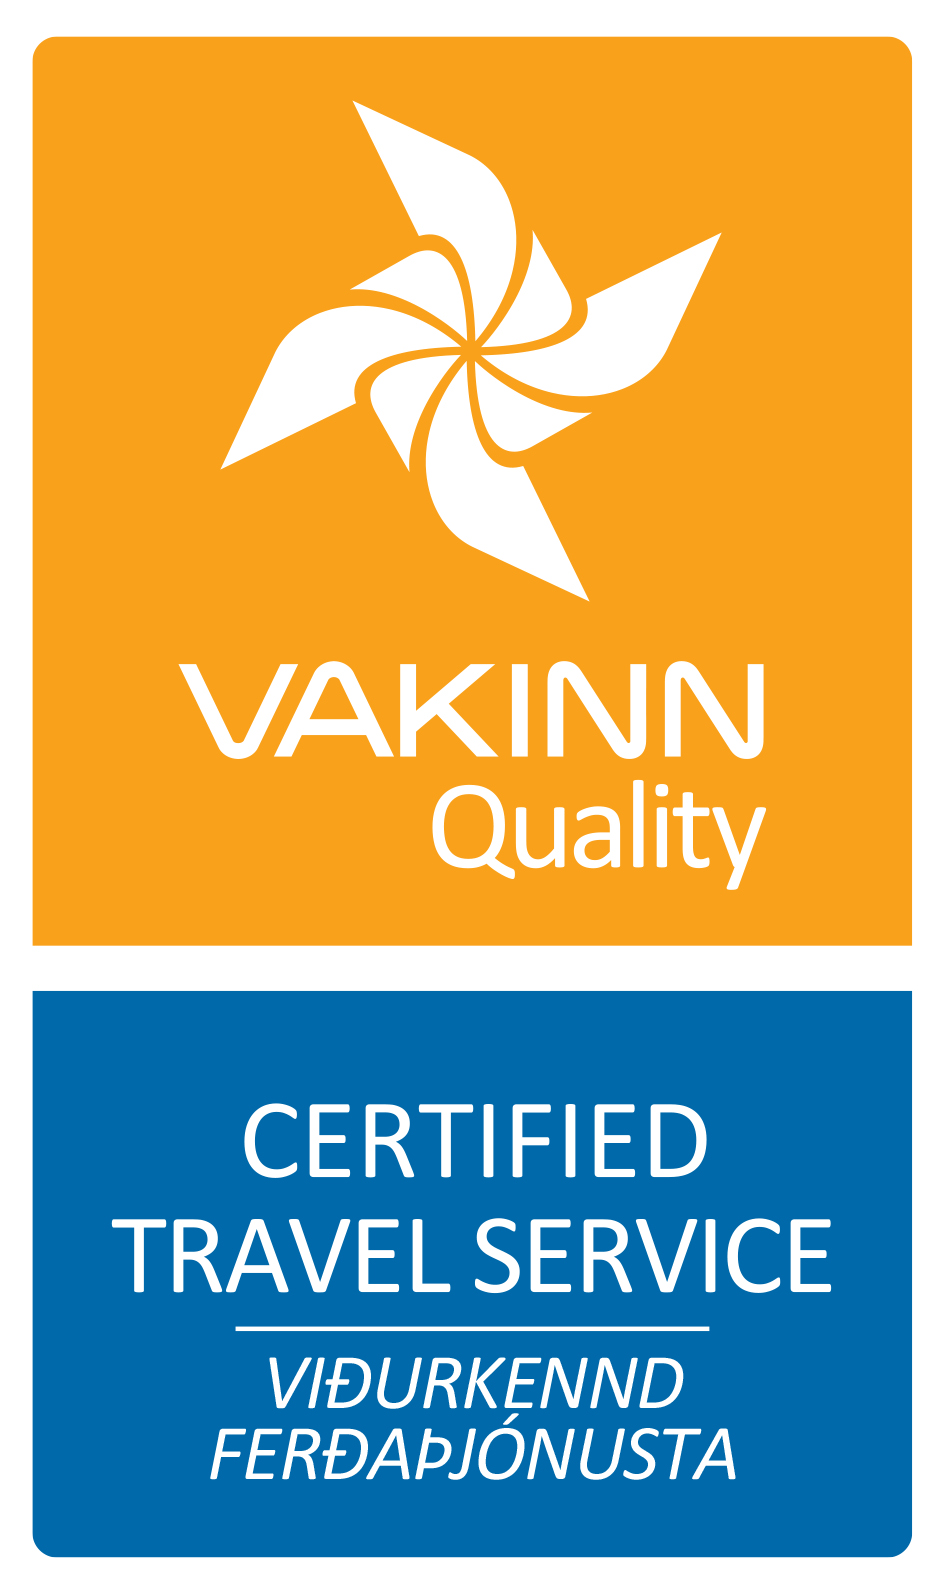 Icelandic Farm Holidays er certified by VAKINN as Travel Service